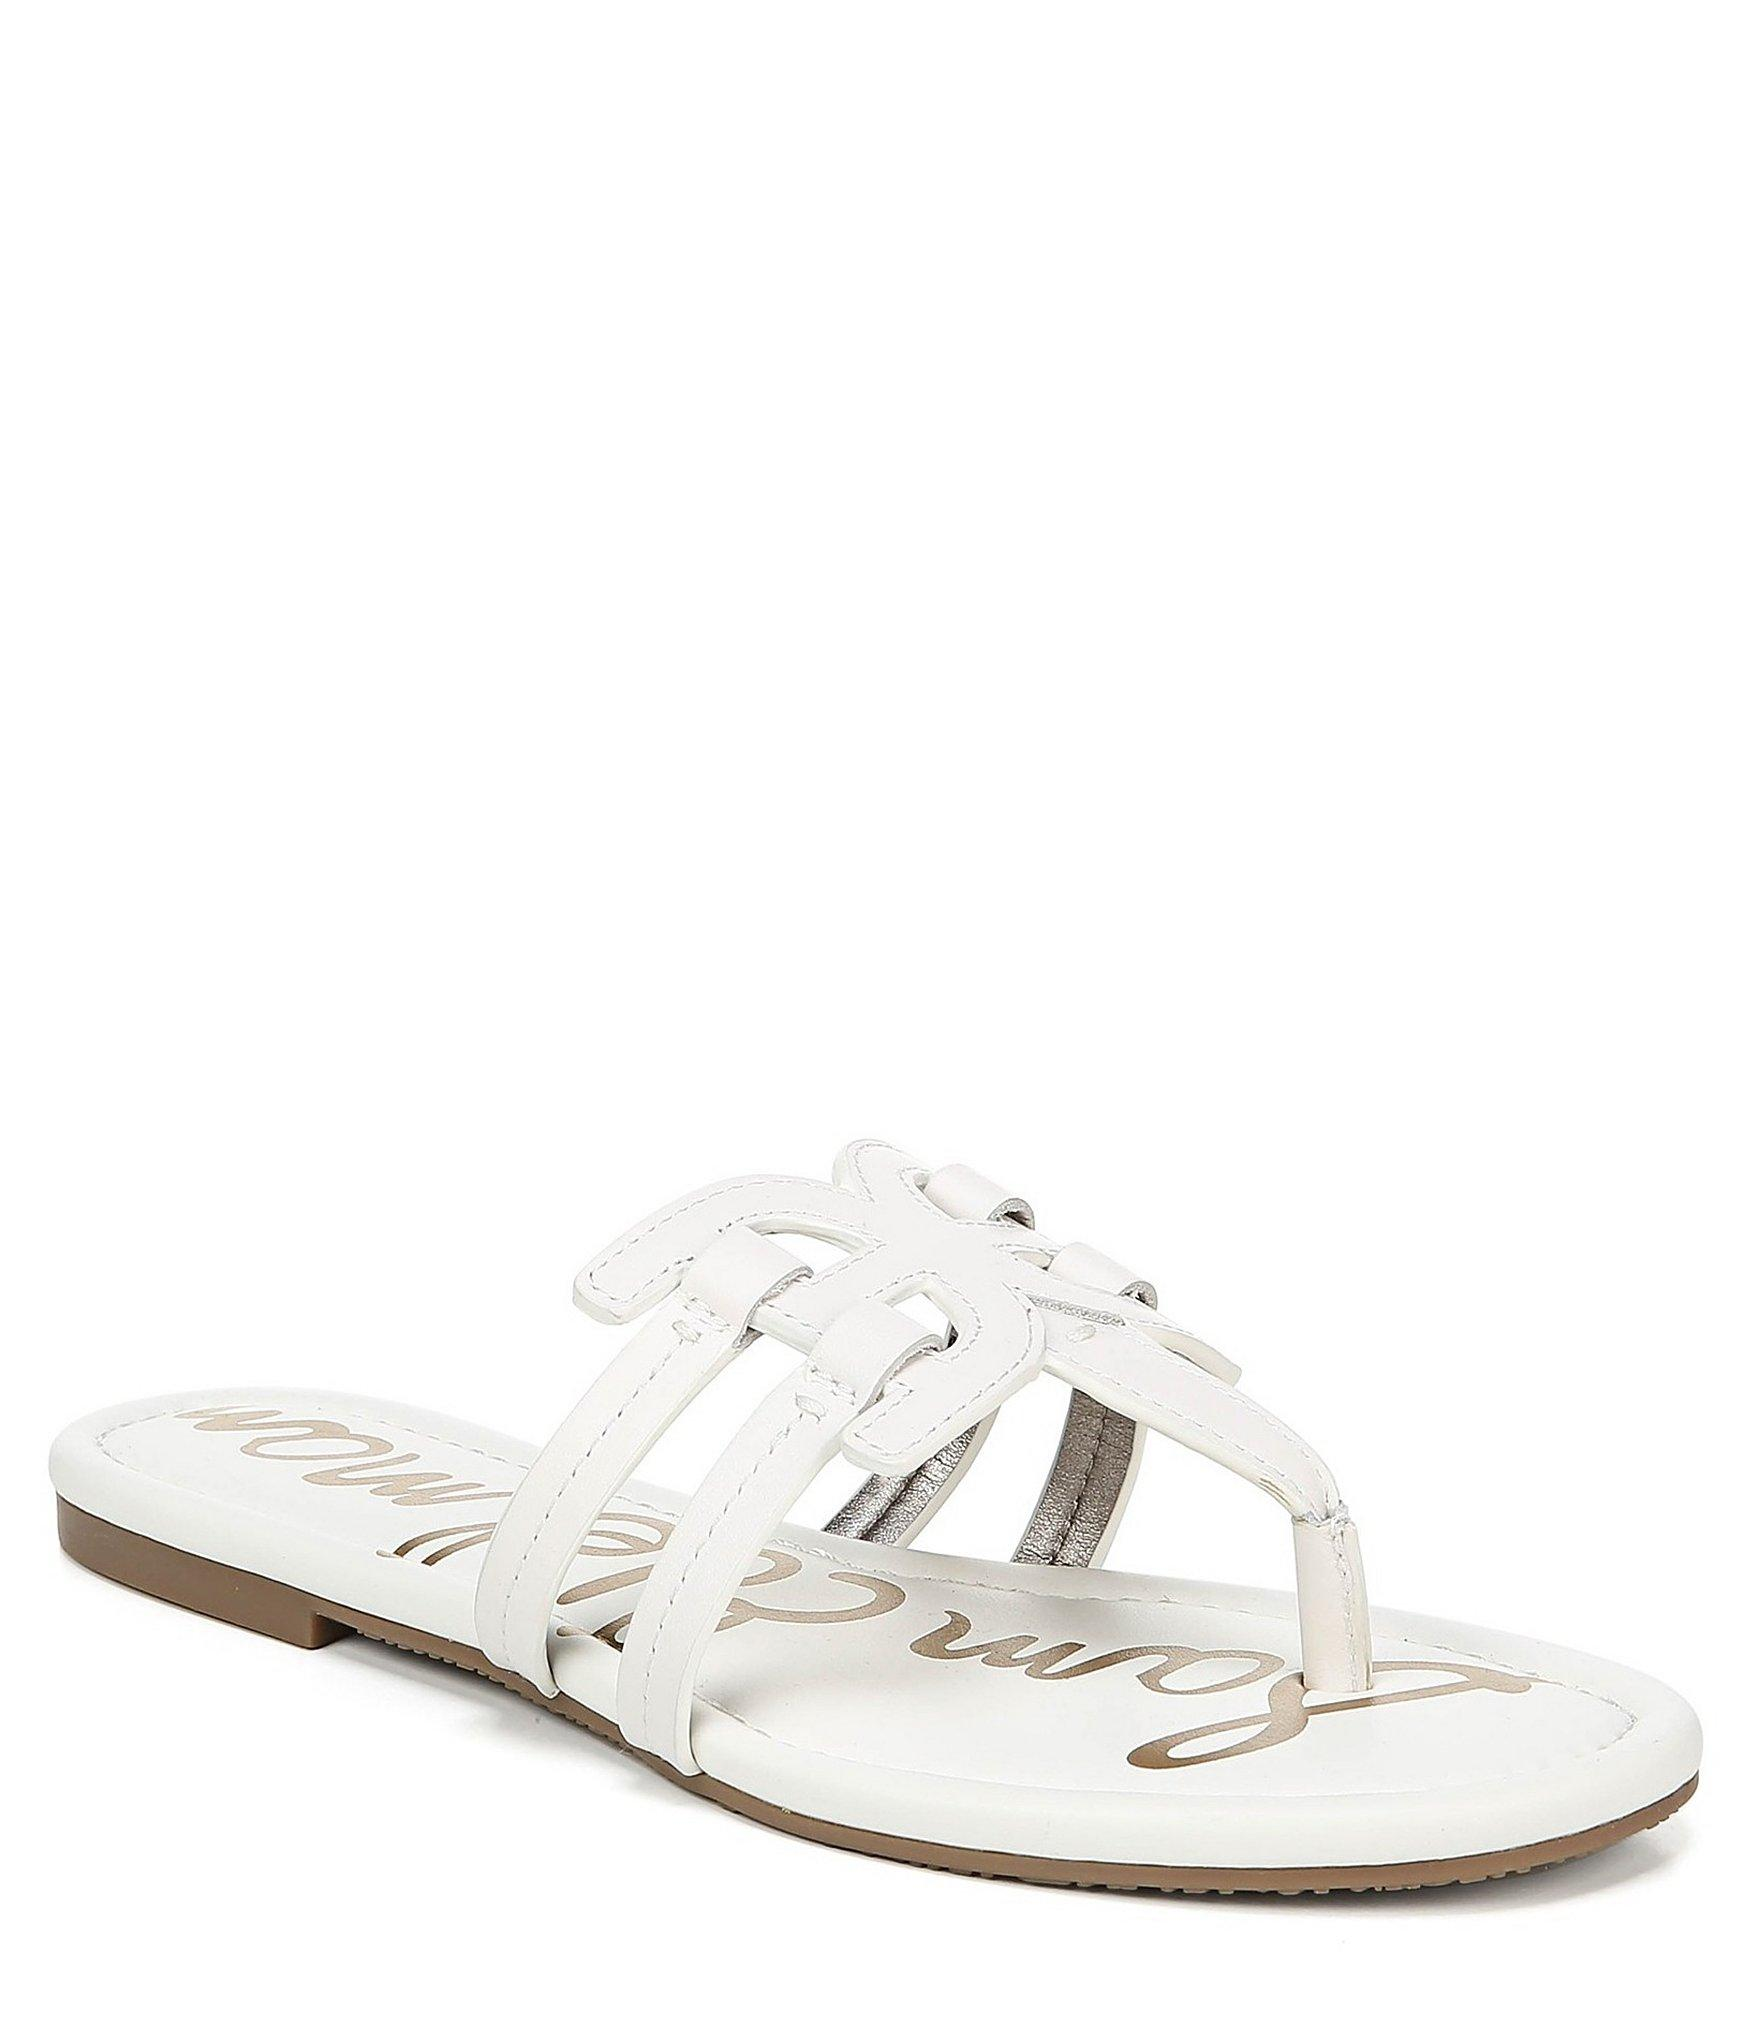 7fac5cd551224f Lyst - Sam Edelman Cara Leather Double E Sandals in White